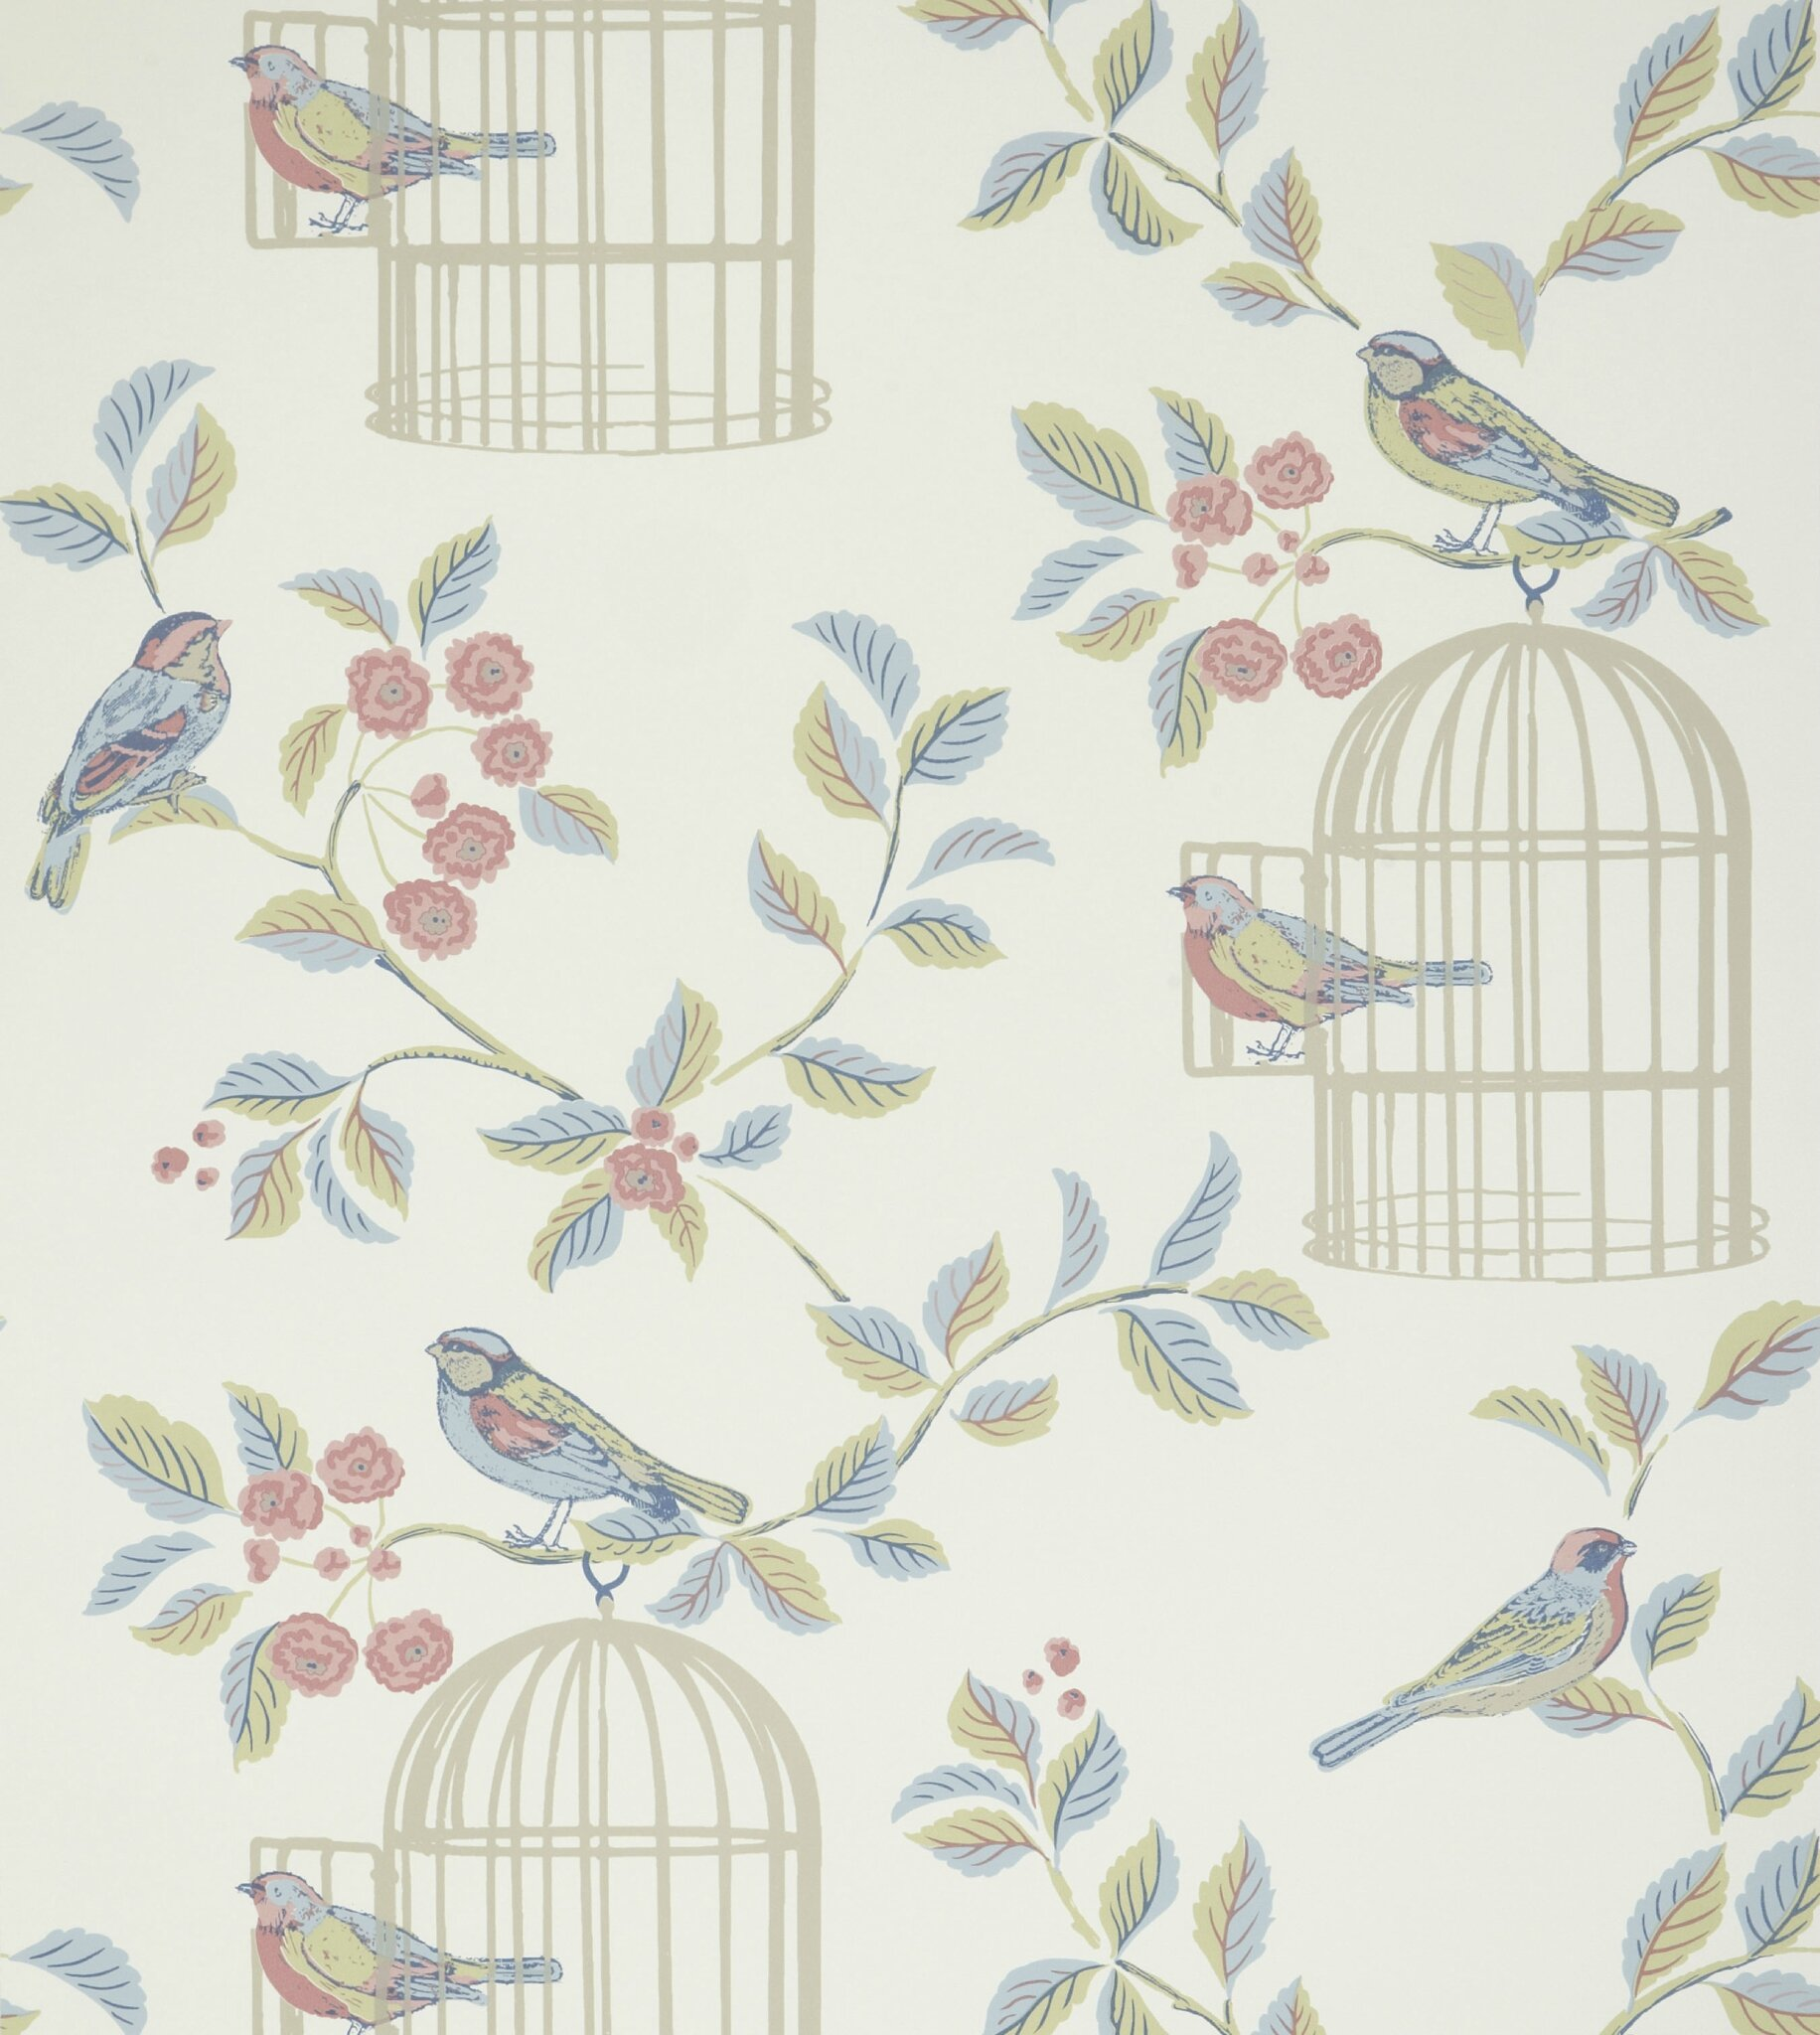 SHABBY-CHIC-SONGBIRD-WALLPAPER-EAU-DE-NIL